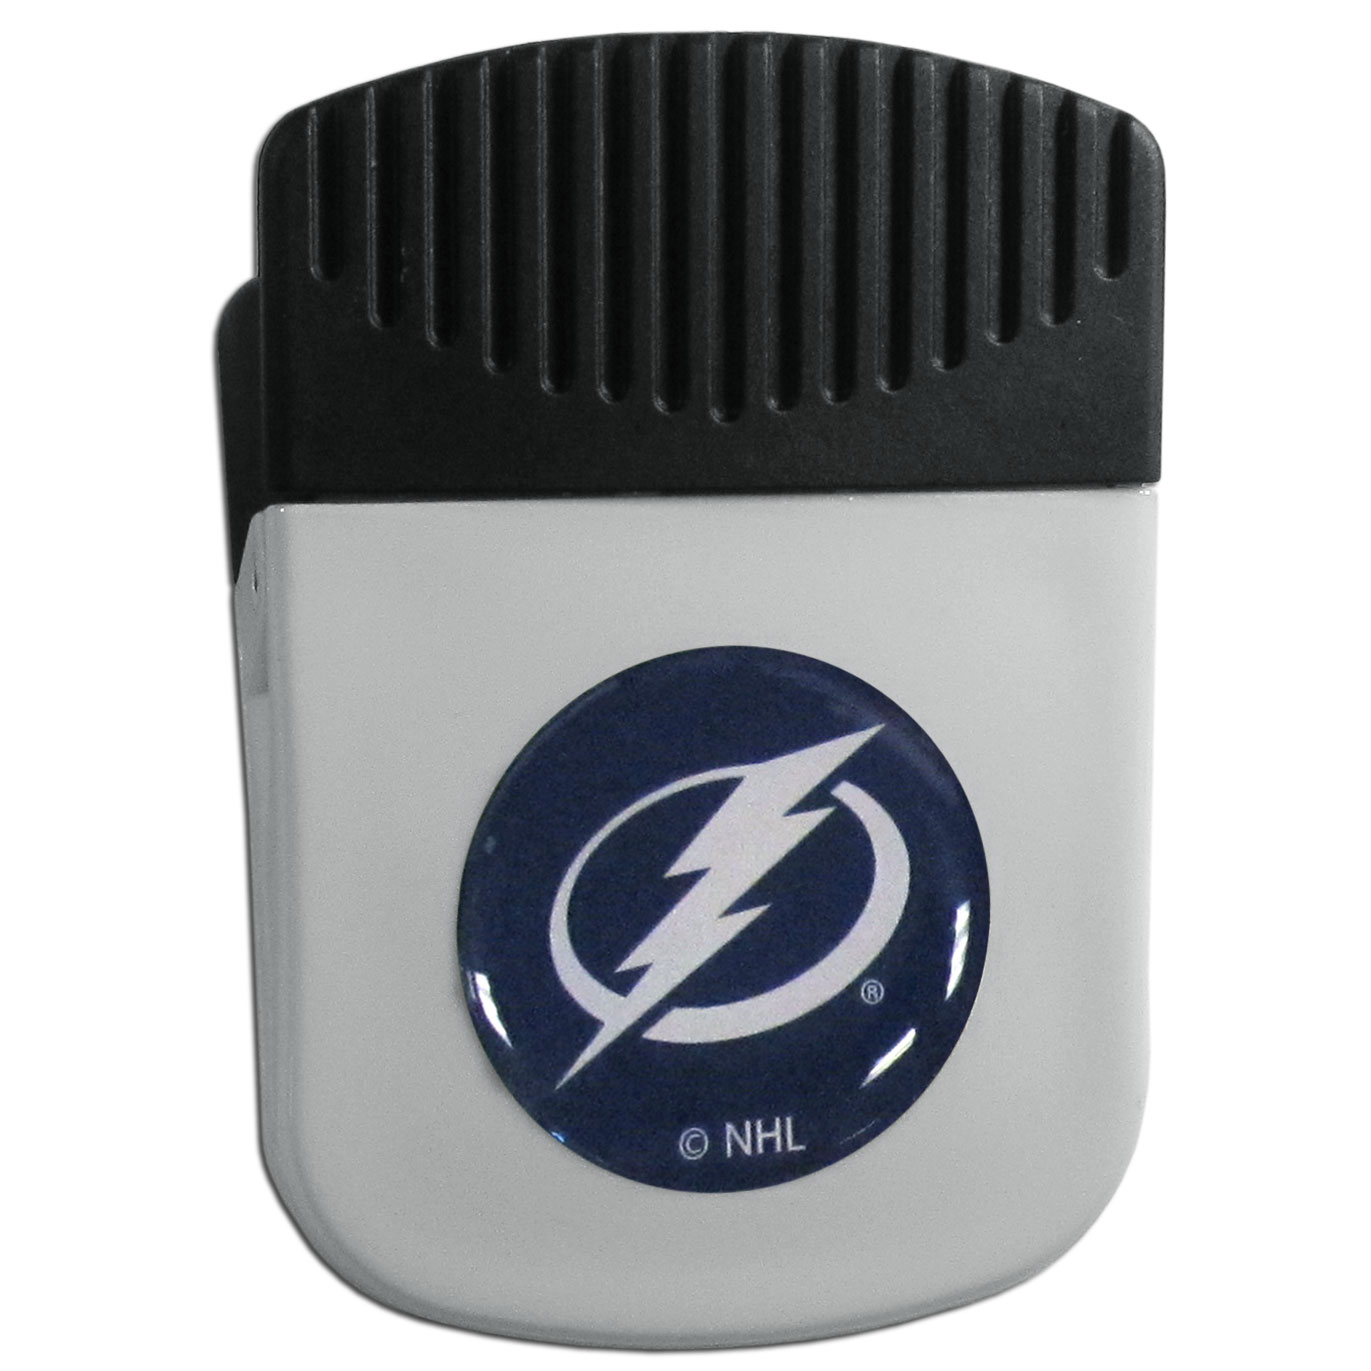 Tampa Bay Lightning® Chip Clip Magnet - Use this attractive clip magnet to hold memos, photos or appointment cards on the fridge or take it down keep use it to clip bags shut. The magnet features a domed Tampa Bay Lightning® logo.